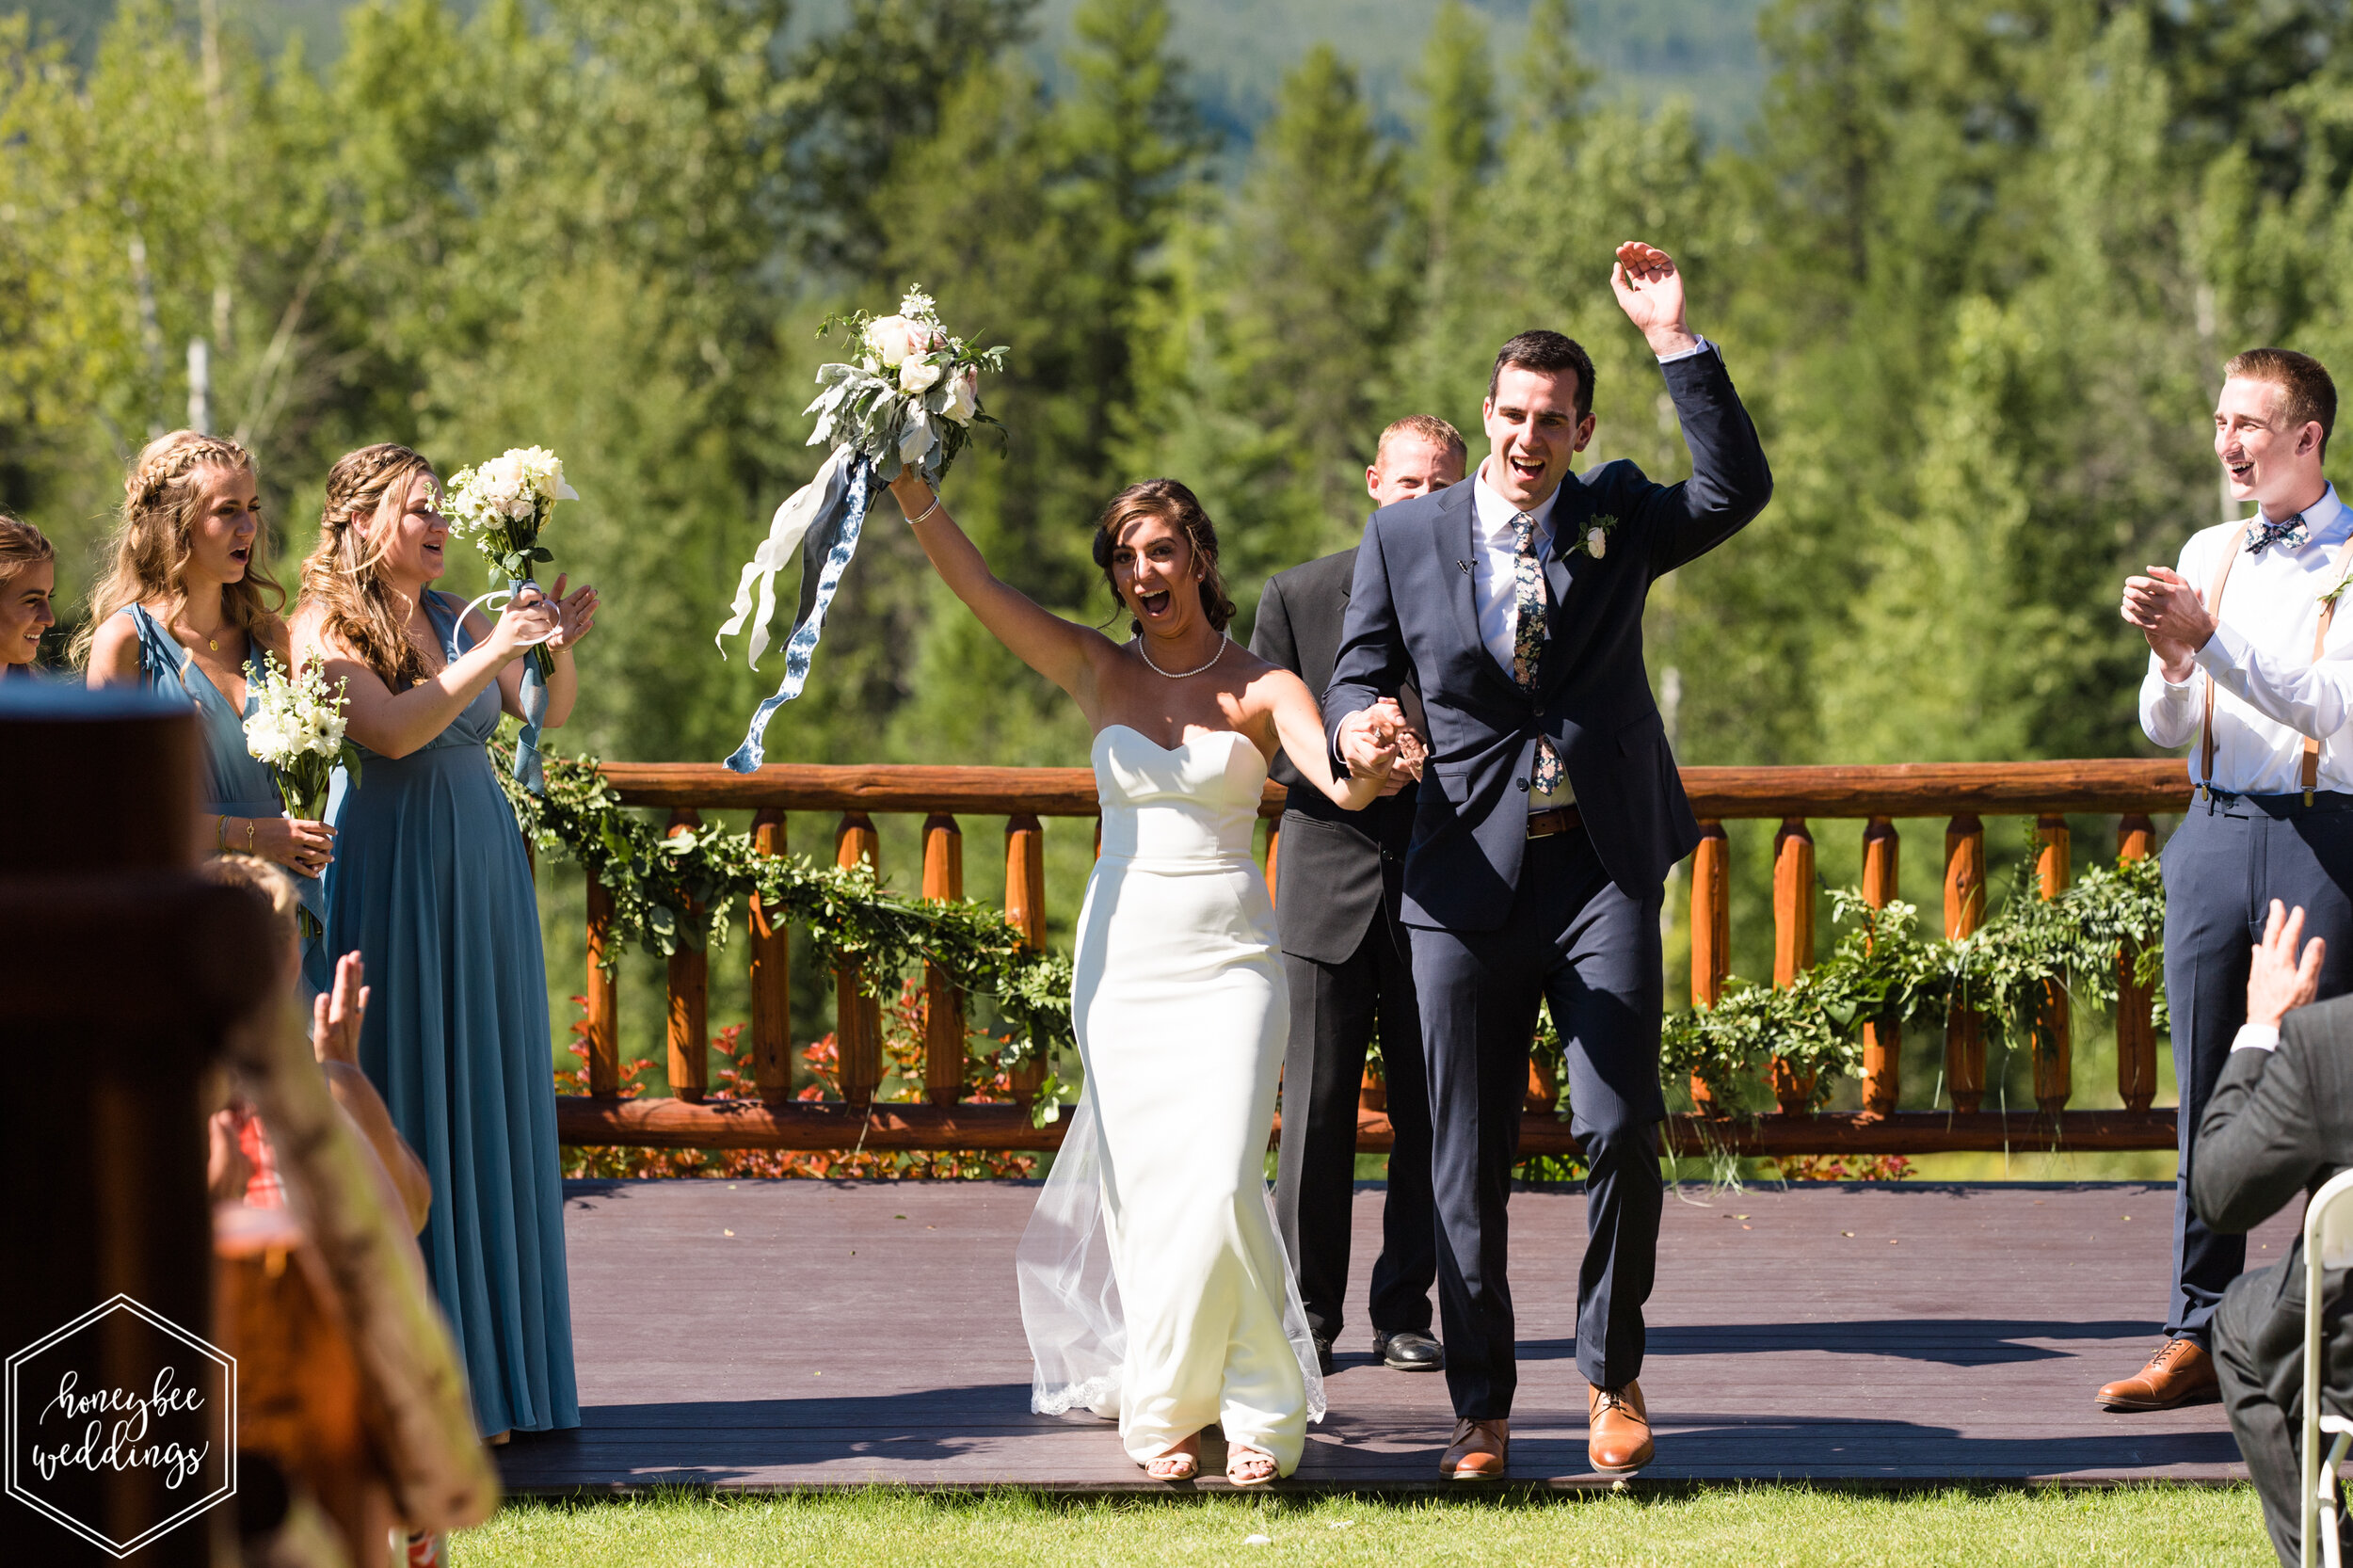 101Glacier National Park Wedding_Glacier Outdoor Center_Honeybee Weddings_Anna & Seth_July 21, 2019-1276.jpg